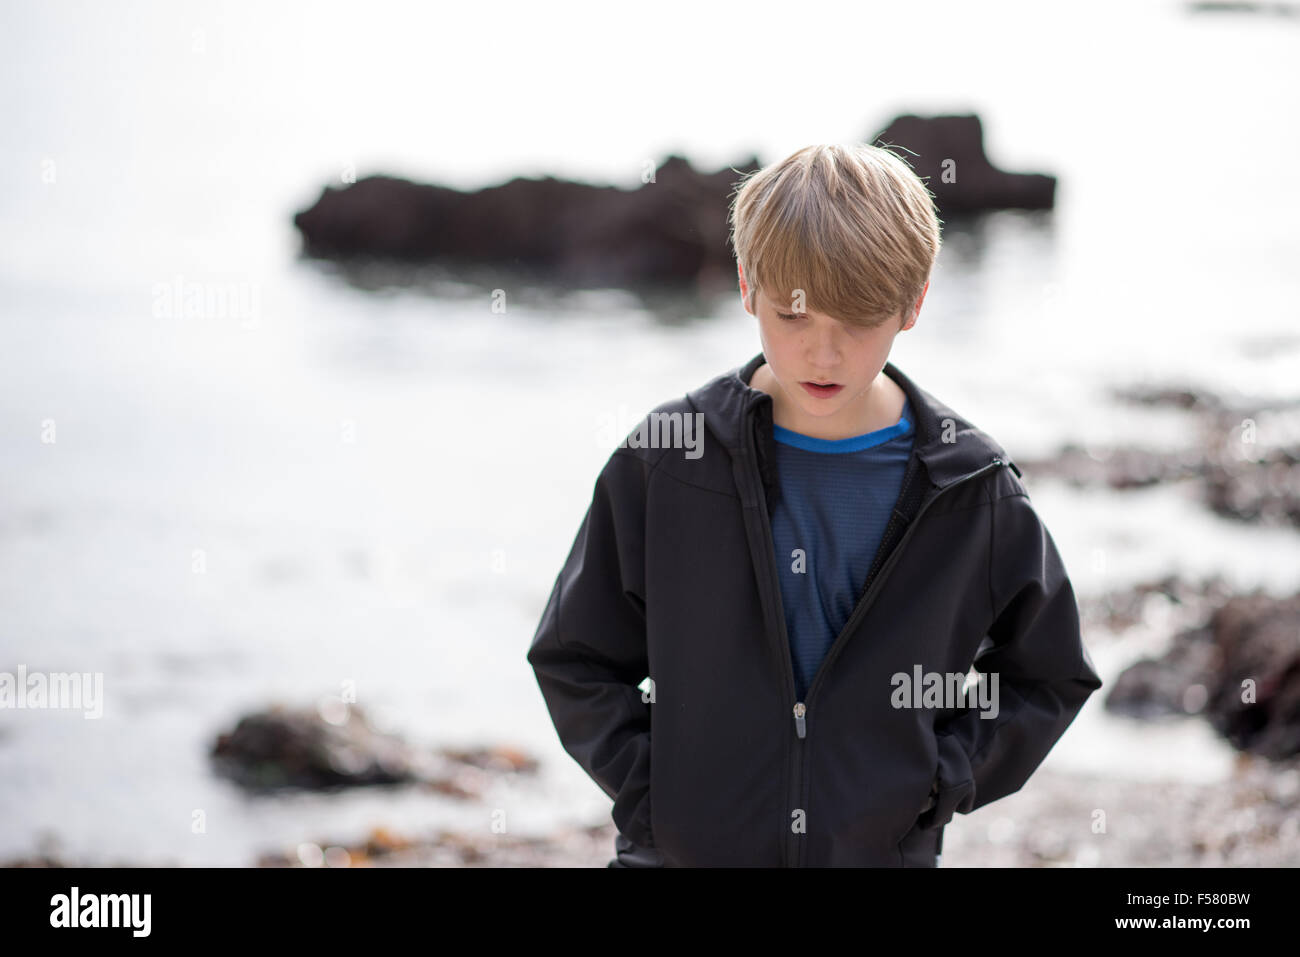 Fair-haired white teenage boy in a black jacket walks alone on a beach looking sad and unhappy in autumn sunshine - Stock Image